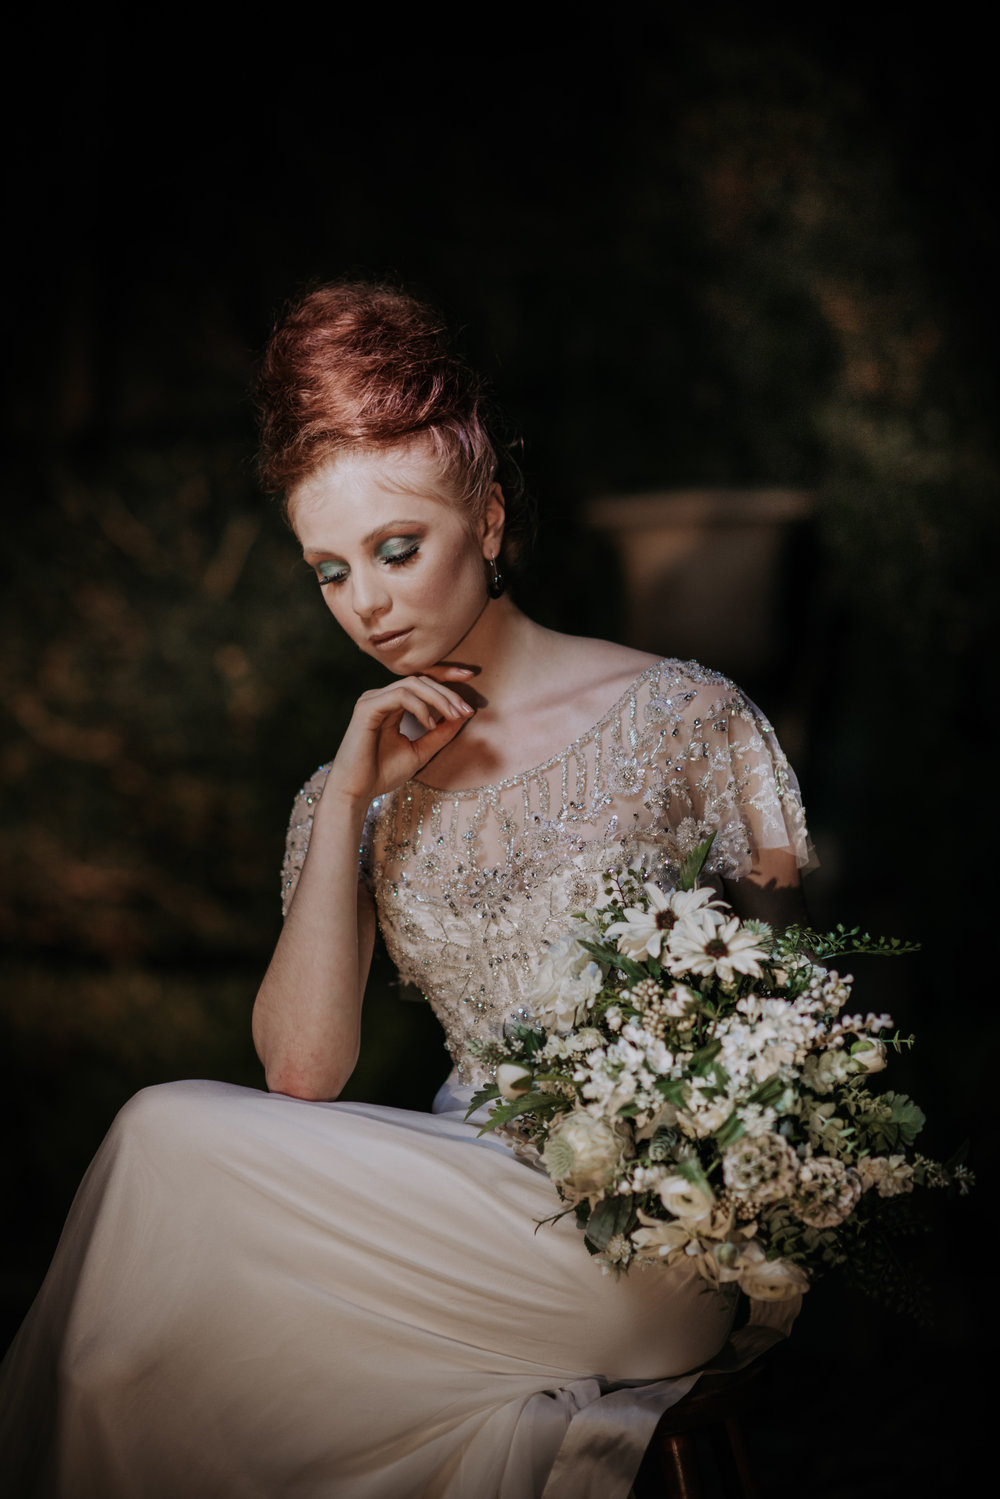 LOVELENSCAPES PHOTOGRAPHY X ANNA CAMPBELL BRIDAL X LEMAE MAKEUP ARTISTRY X BLOOMING LOVELY BOUQUETS X ERIN LIGHTFOOT X LITTLE WHITE COUTURE • 40.jpg